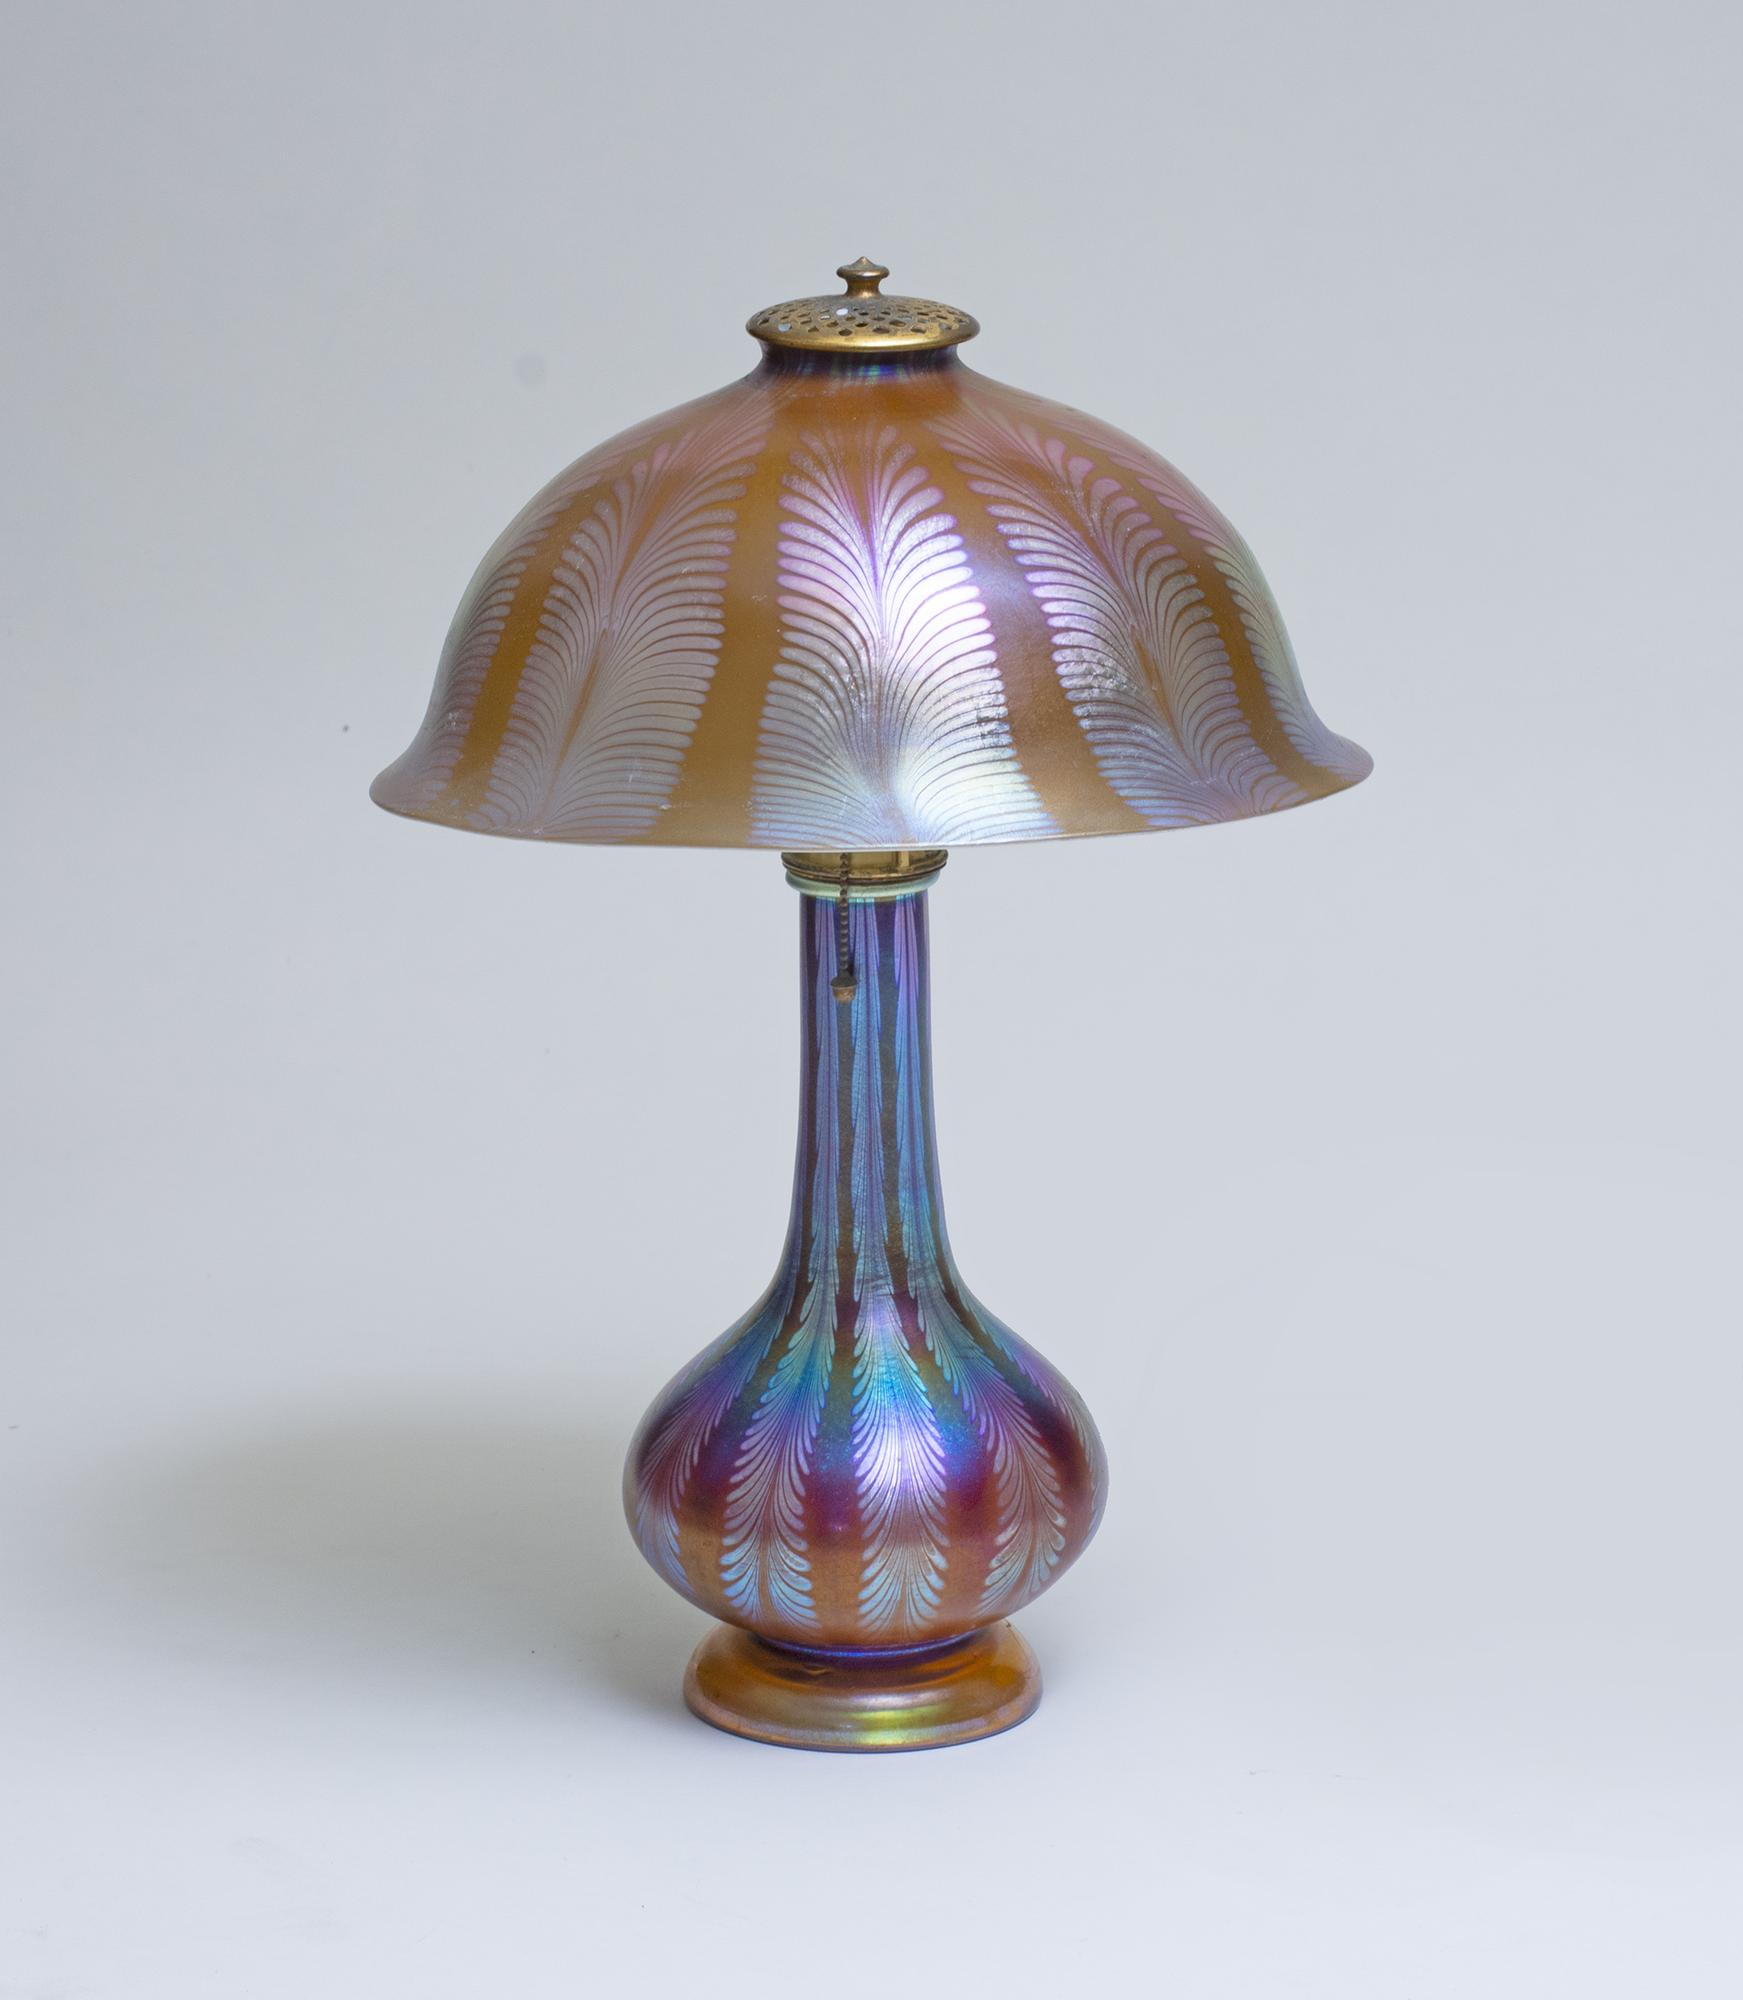 Tiffany Studios Favrile Glass Lamp 2